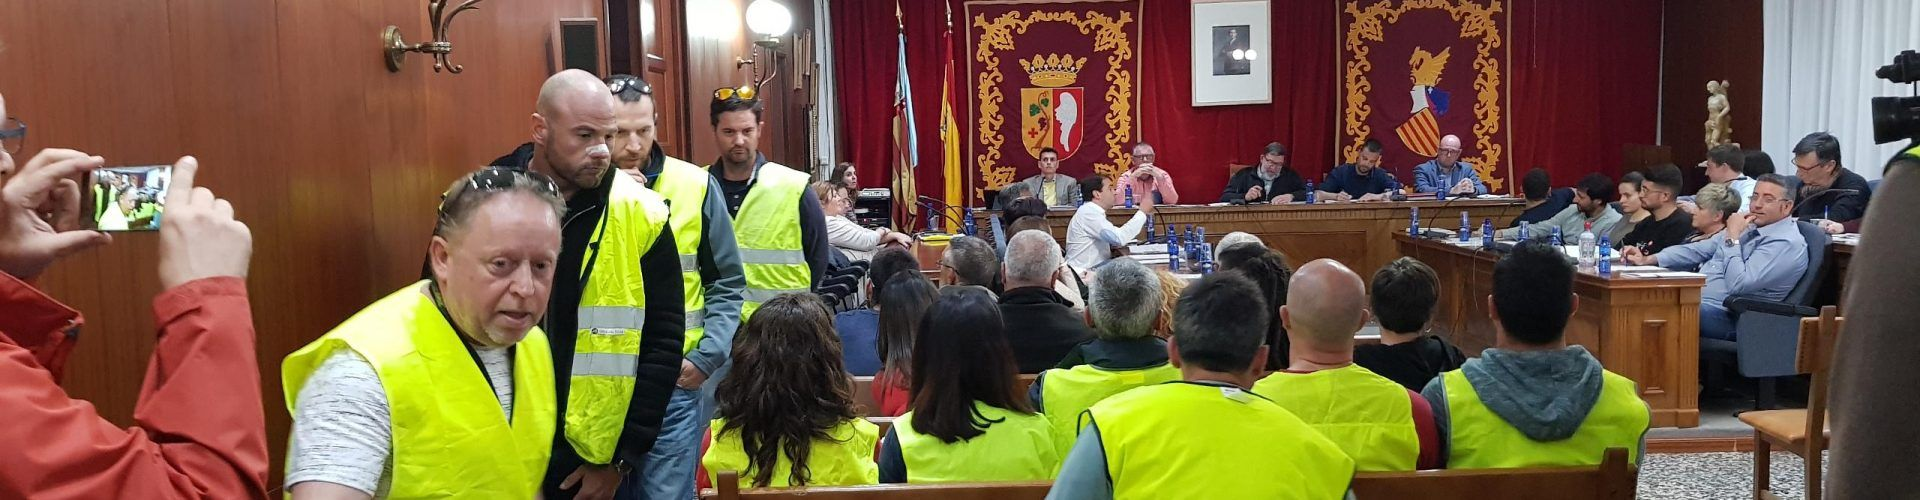 Ple ordinari d'abril